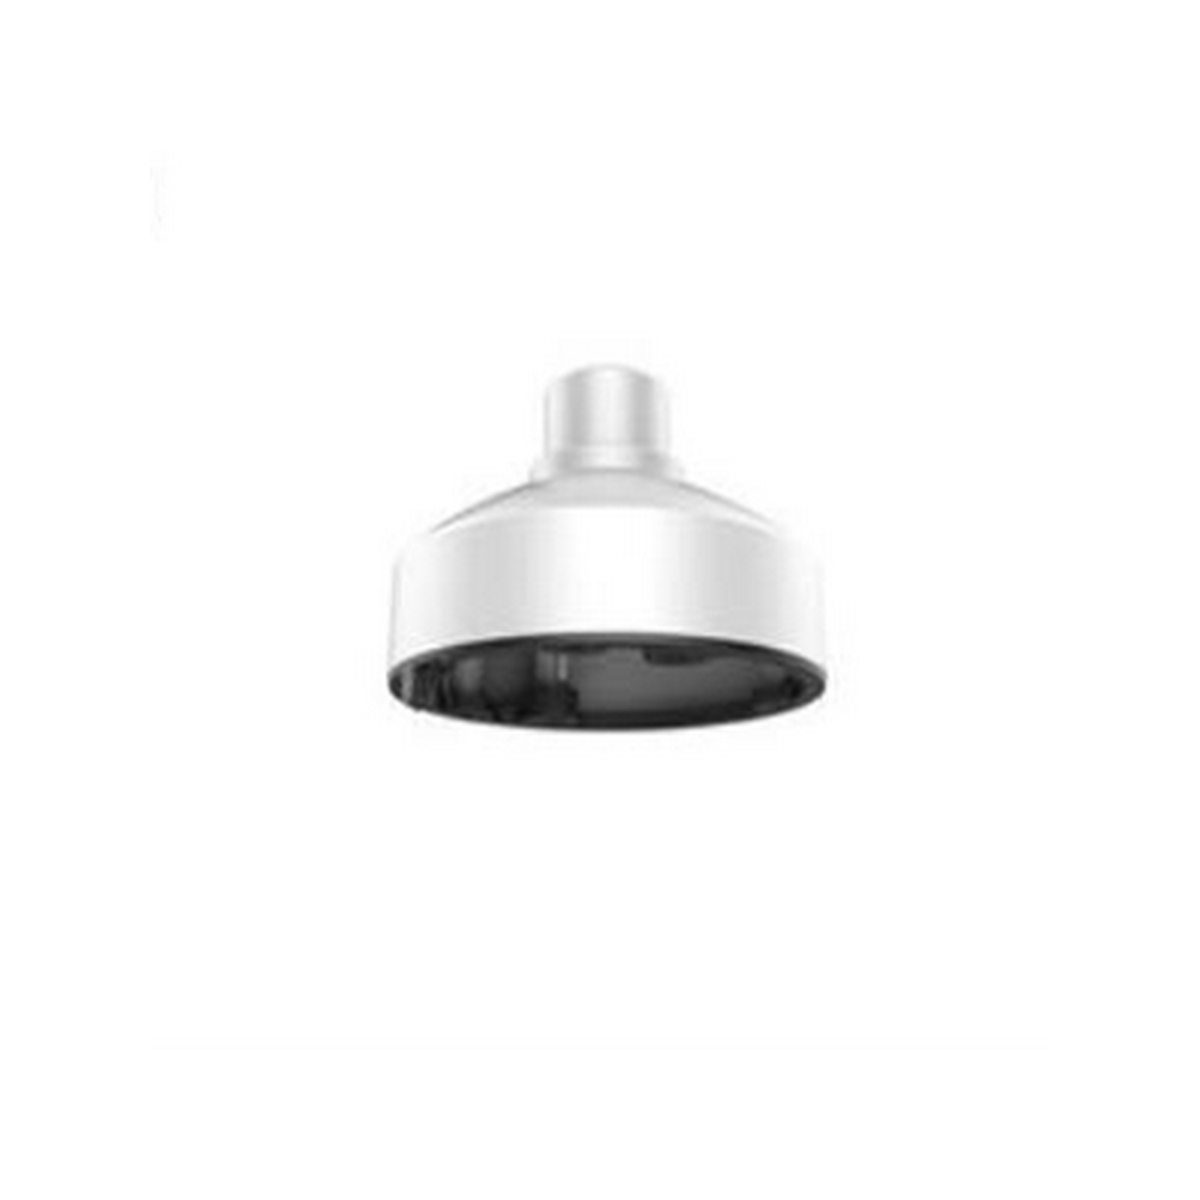 Hikvision PC130T  Pendant Cap Bracket, 130mm, for Turret Style Camera